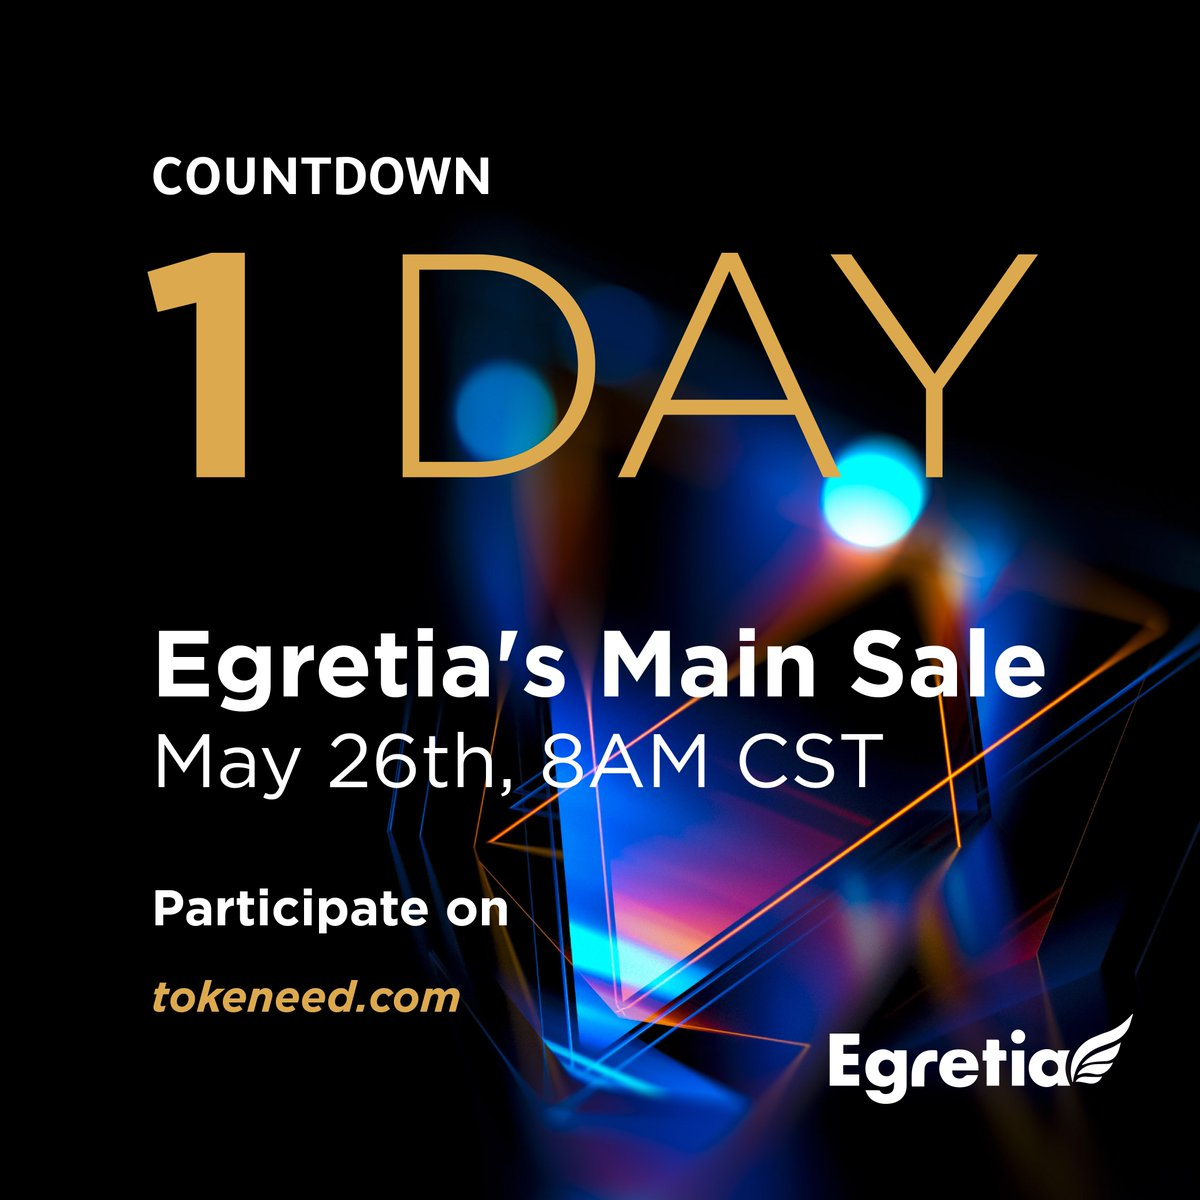 Egretia's main sale is opening on May 26th at 8AM CST. Only 1 day left! Let's countdown together! #egretia #blockchain #EGT #countdown #1day<br>http://pic.twitter.com/B8dYukrjdV